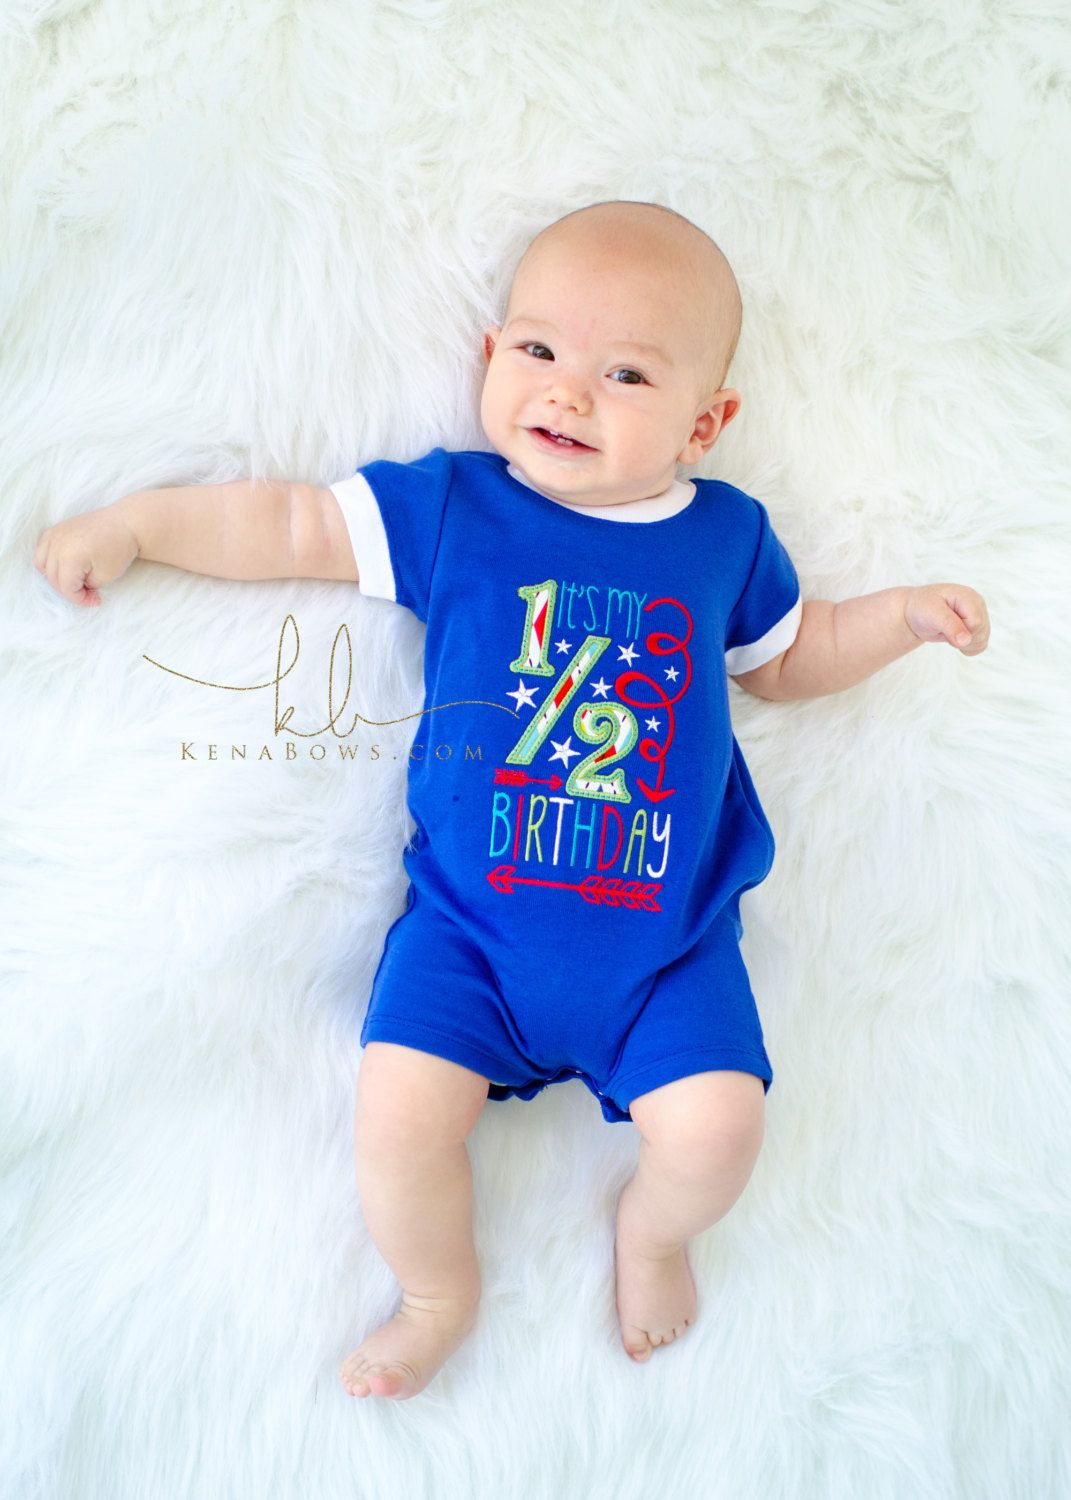 1/2 Birthday Baby, 6 month Photo Shoot Outfit, Blue Romper